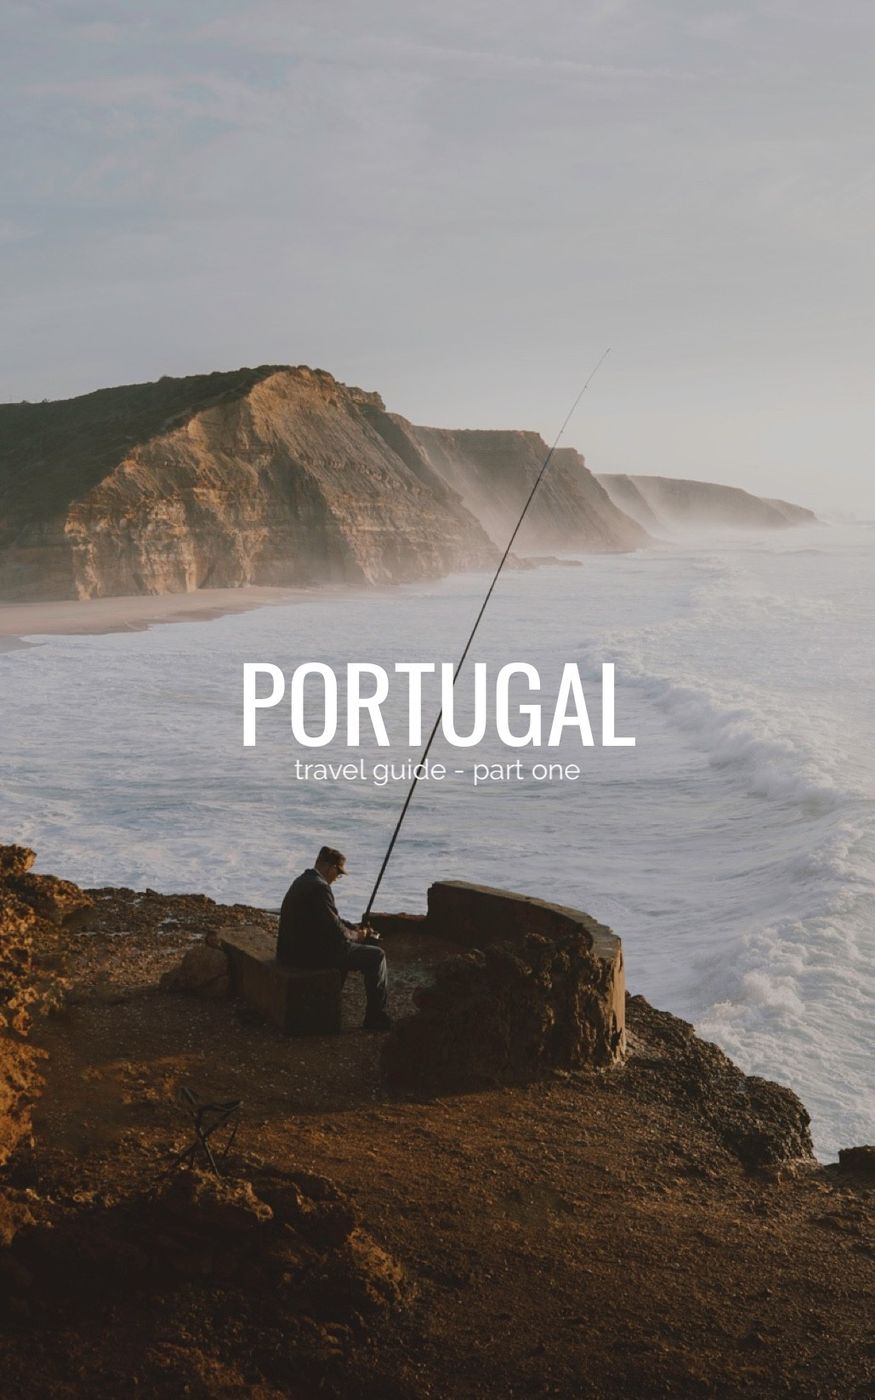 This is the first part of my Portugal Travel guide. It covers the area around Lisbon, mostly the spots on the coast of Sintra - Ericeira.